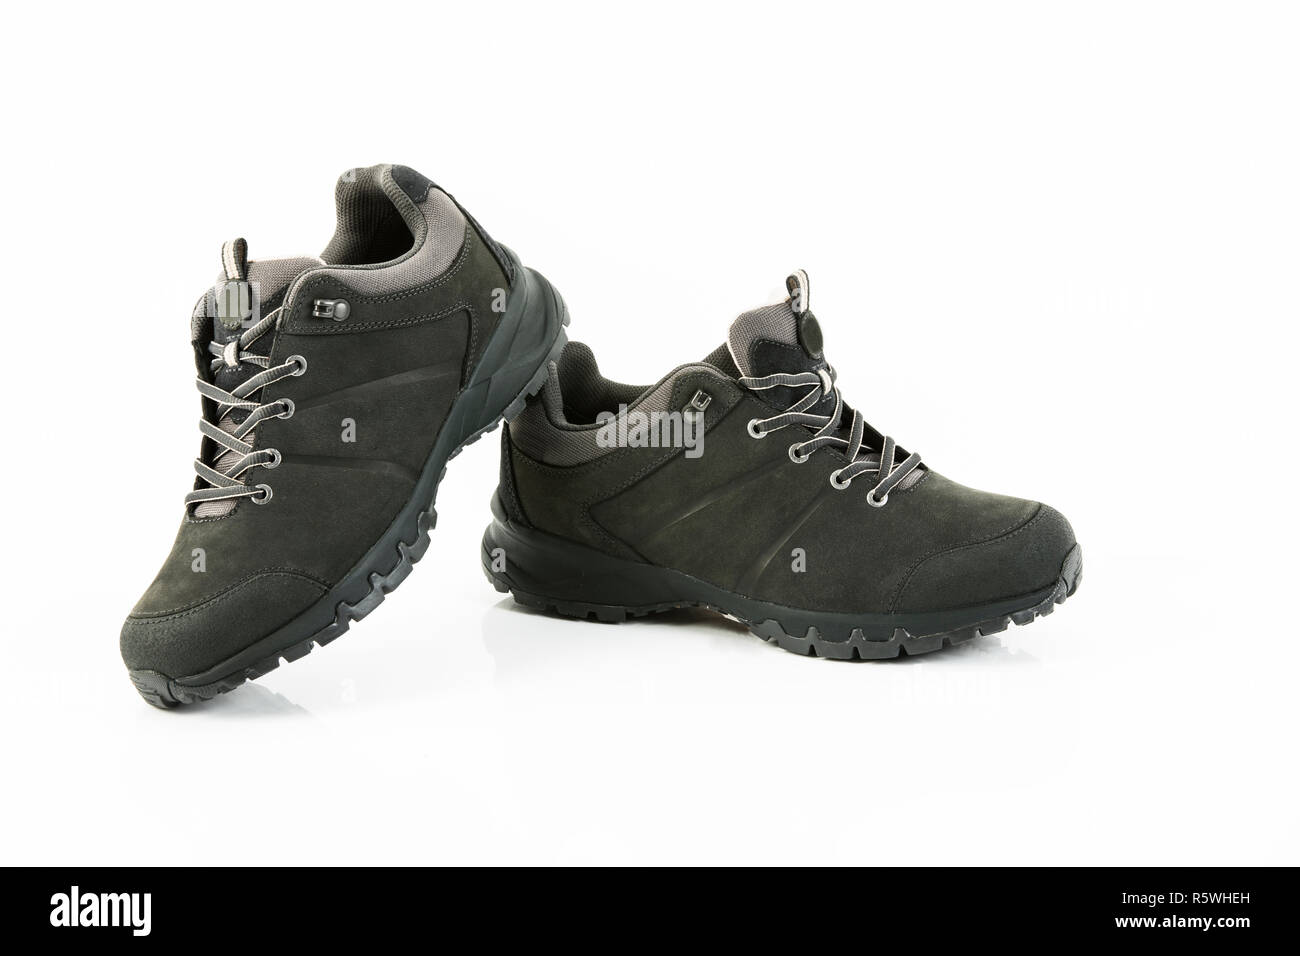 walking boots Stock Photo